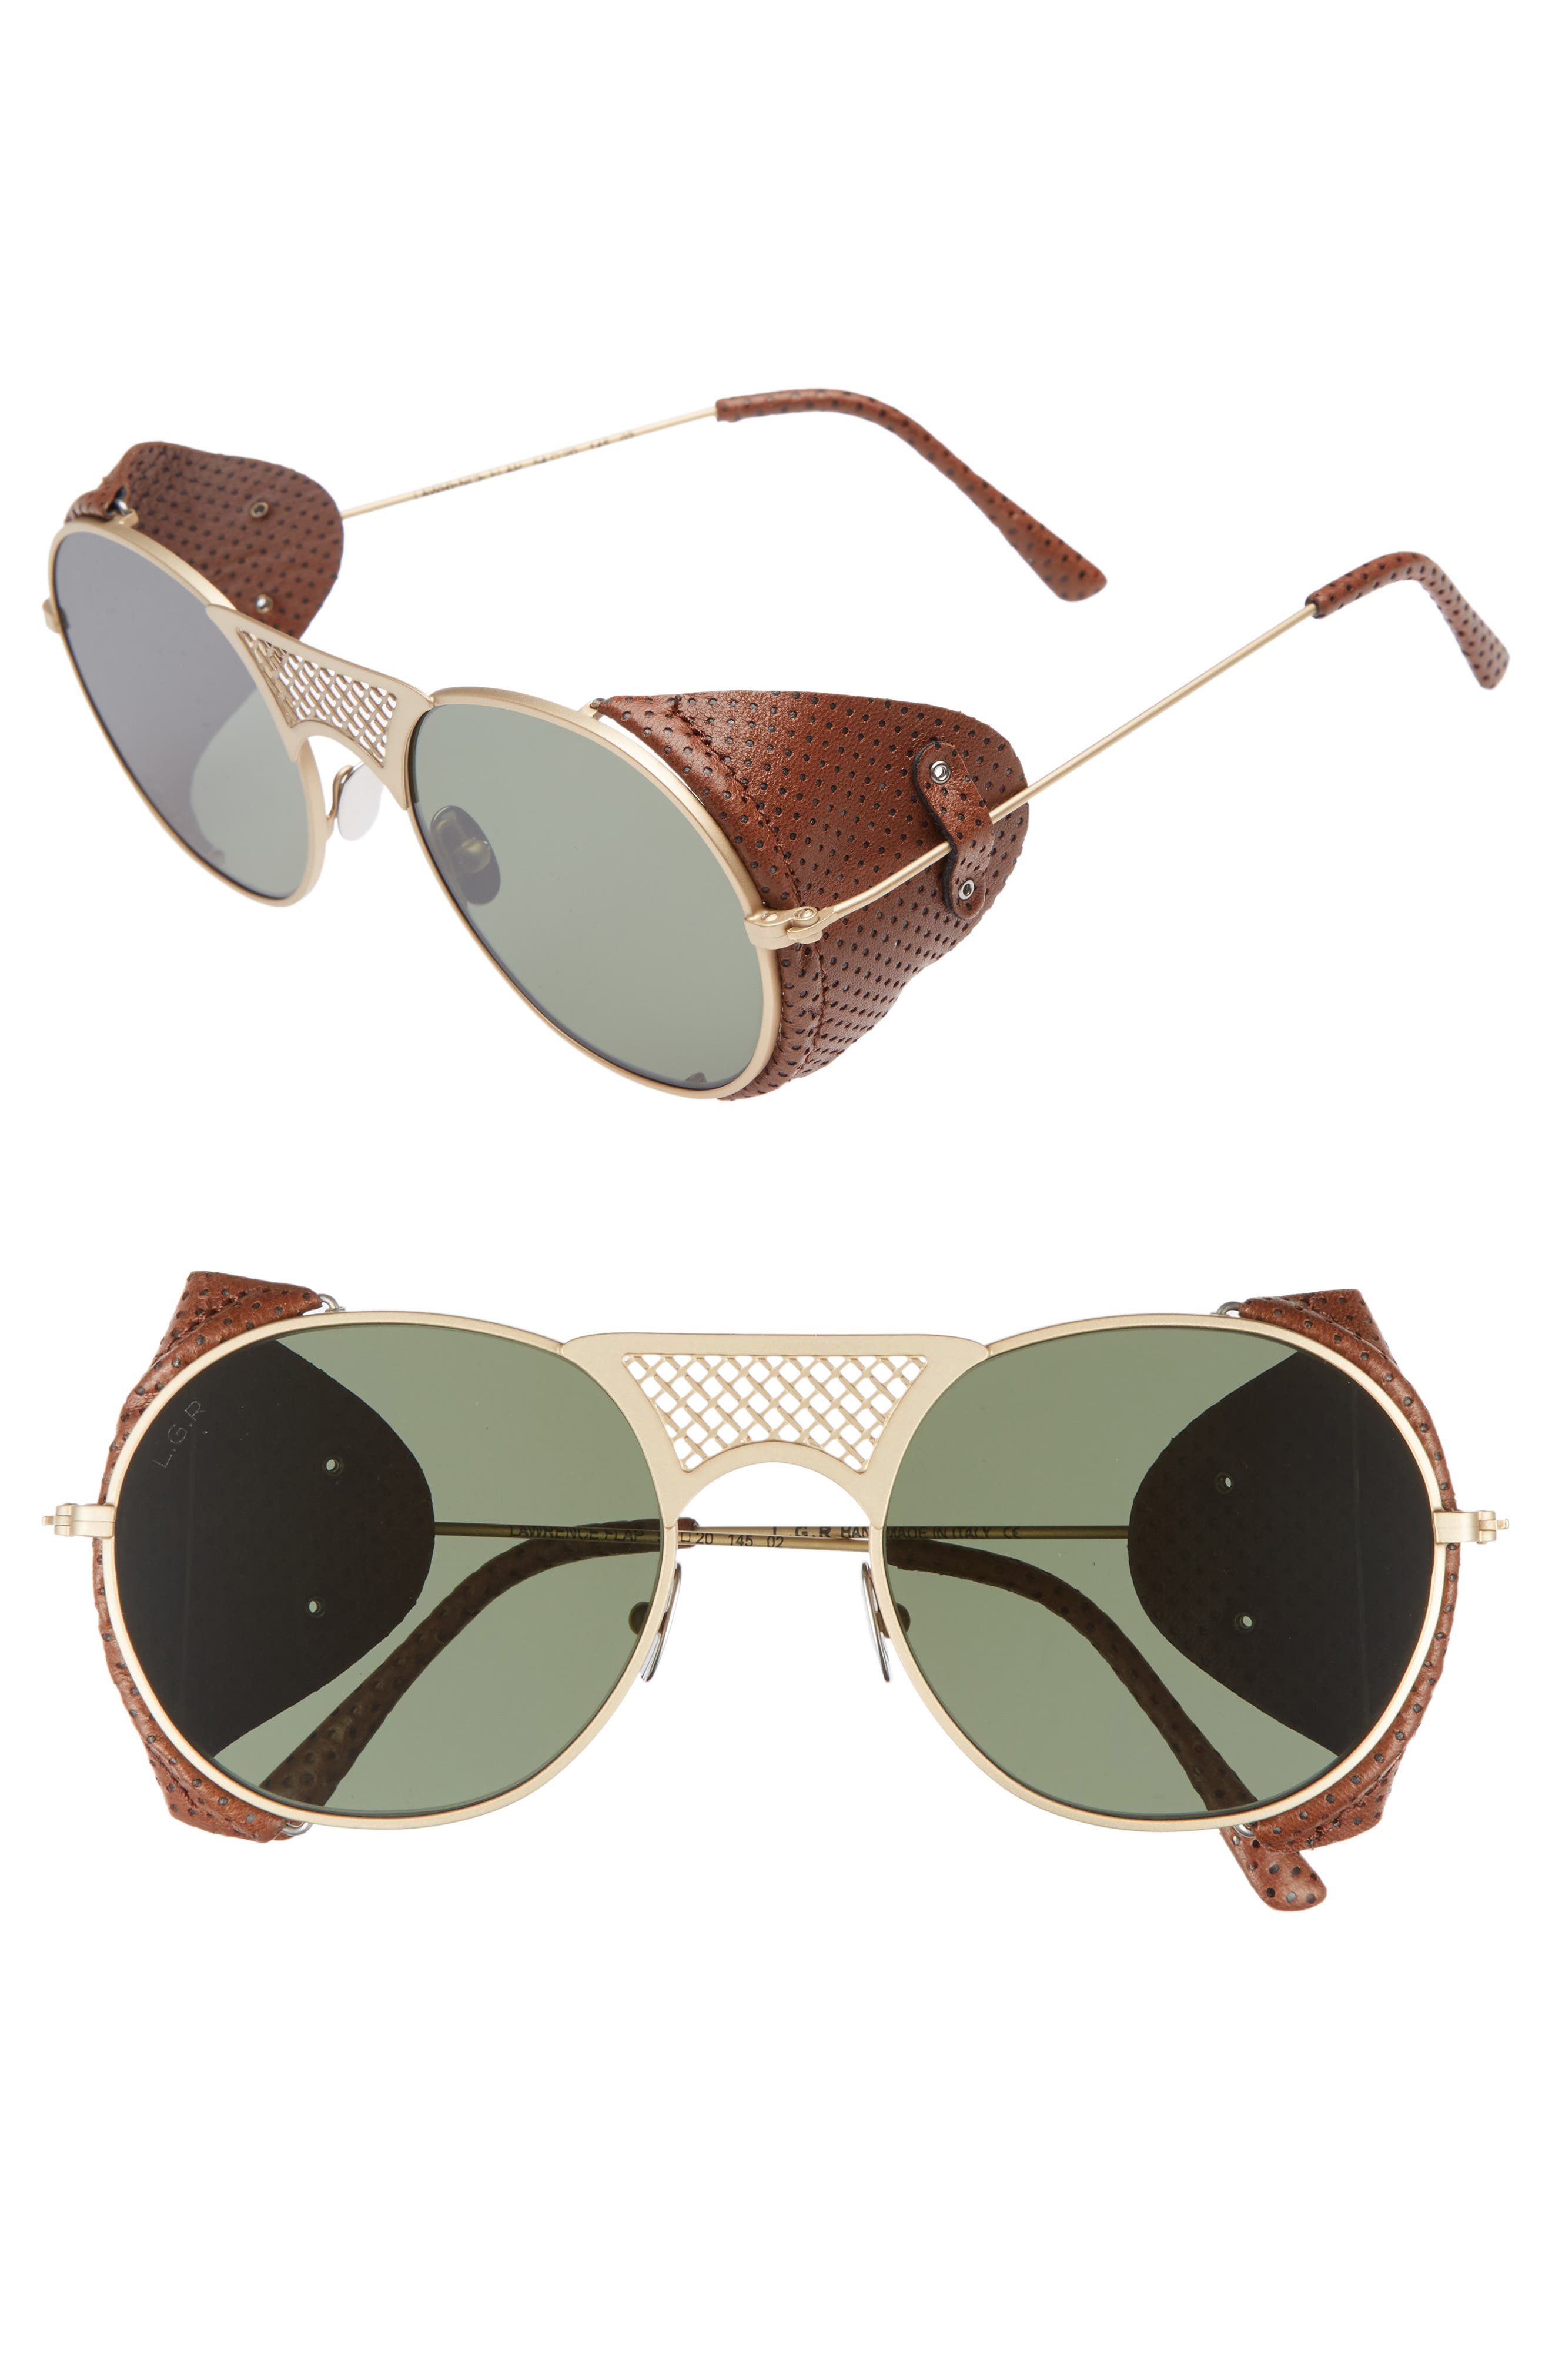 Lawrence 54mm Sunglasses,                         Main,                         color, Gold Matte/ Brown/ Green